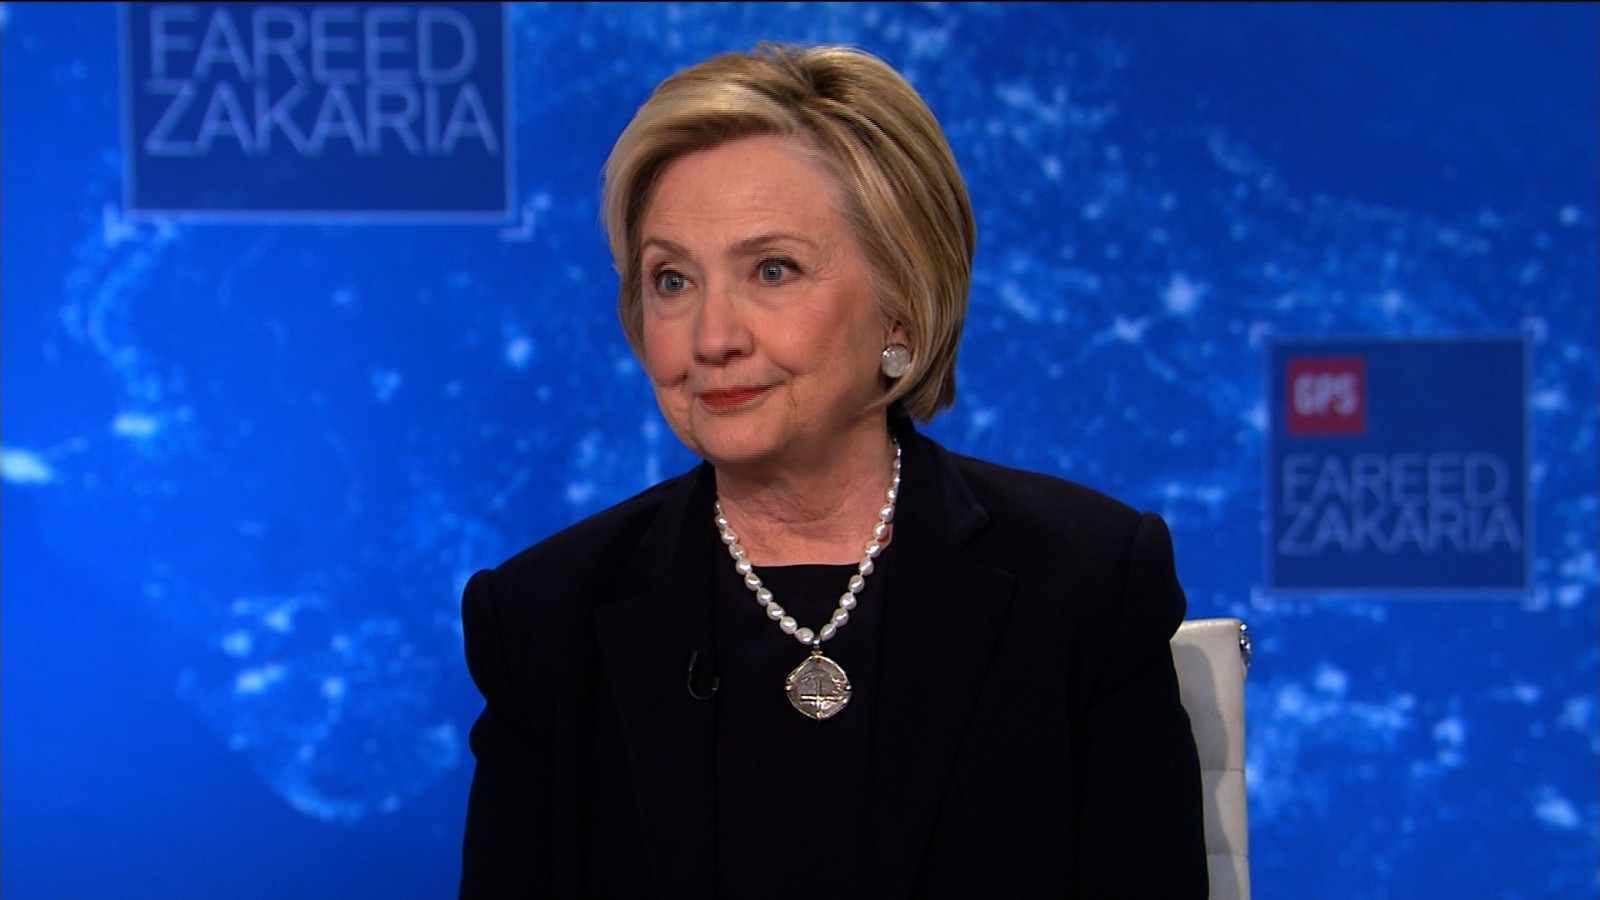 Clinton on Putin: Keep an eye on him, because hes not done